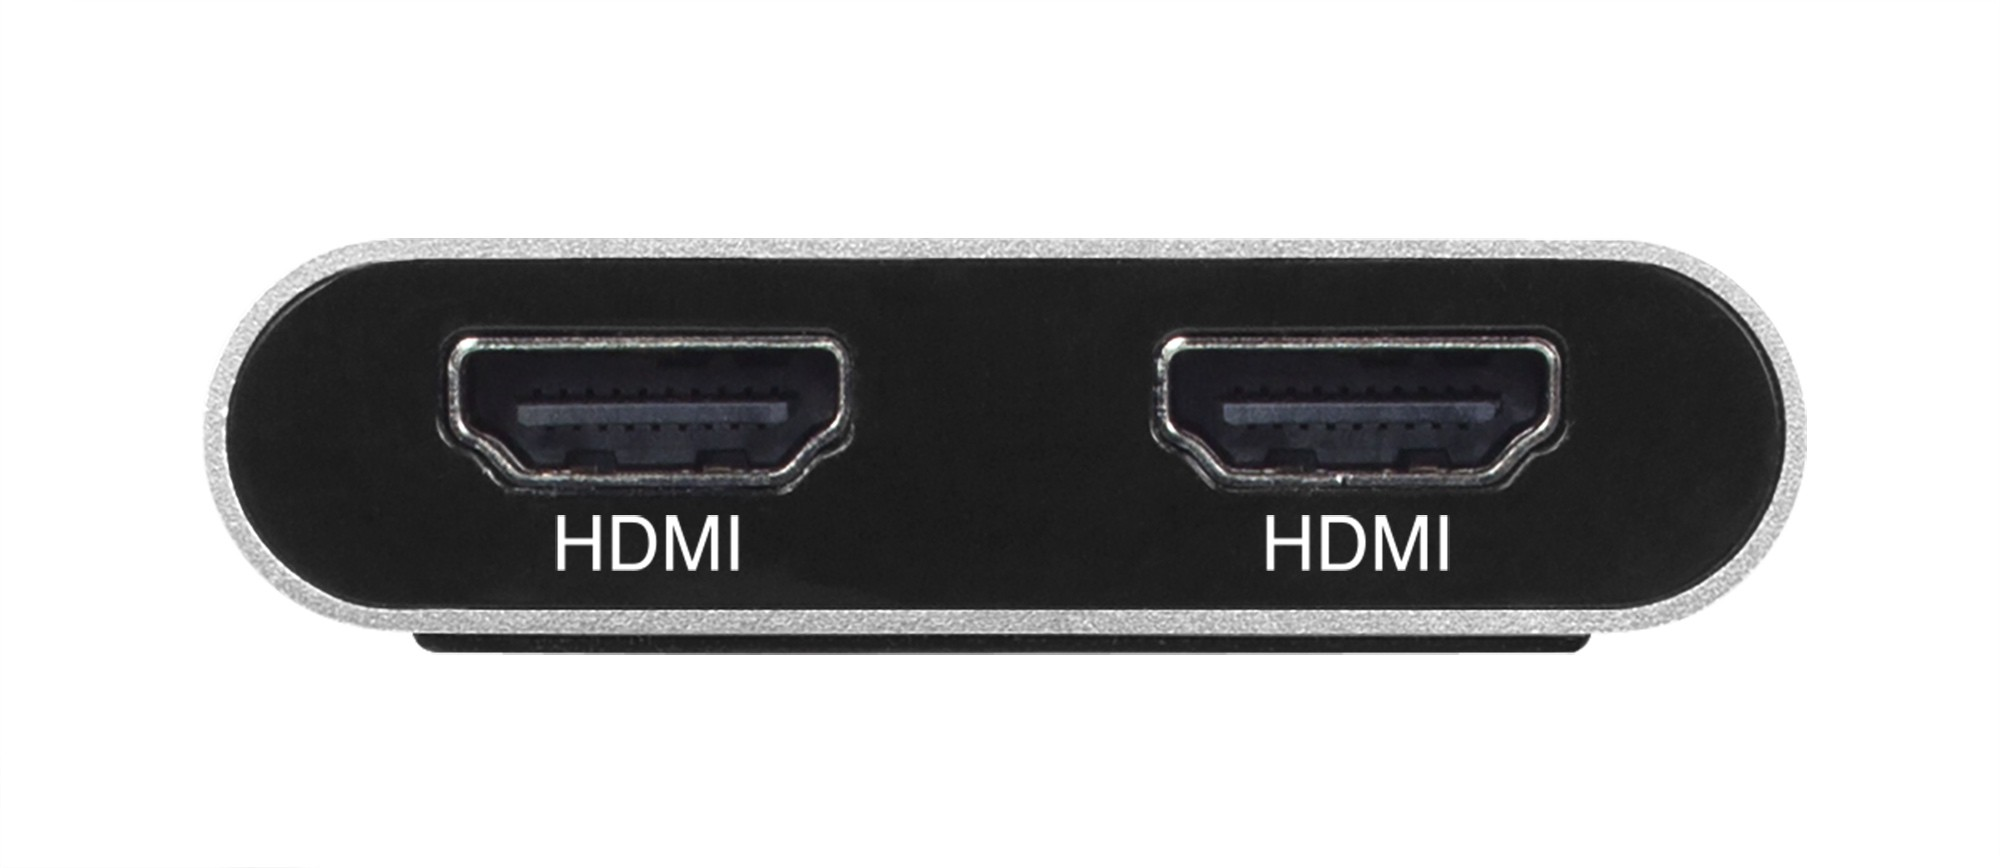 OWC Thunderbolt 3 Dual HDMI Display Adapter, OWCTB3ADP2HDMI